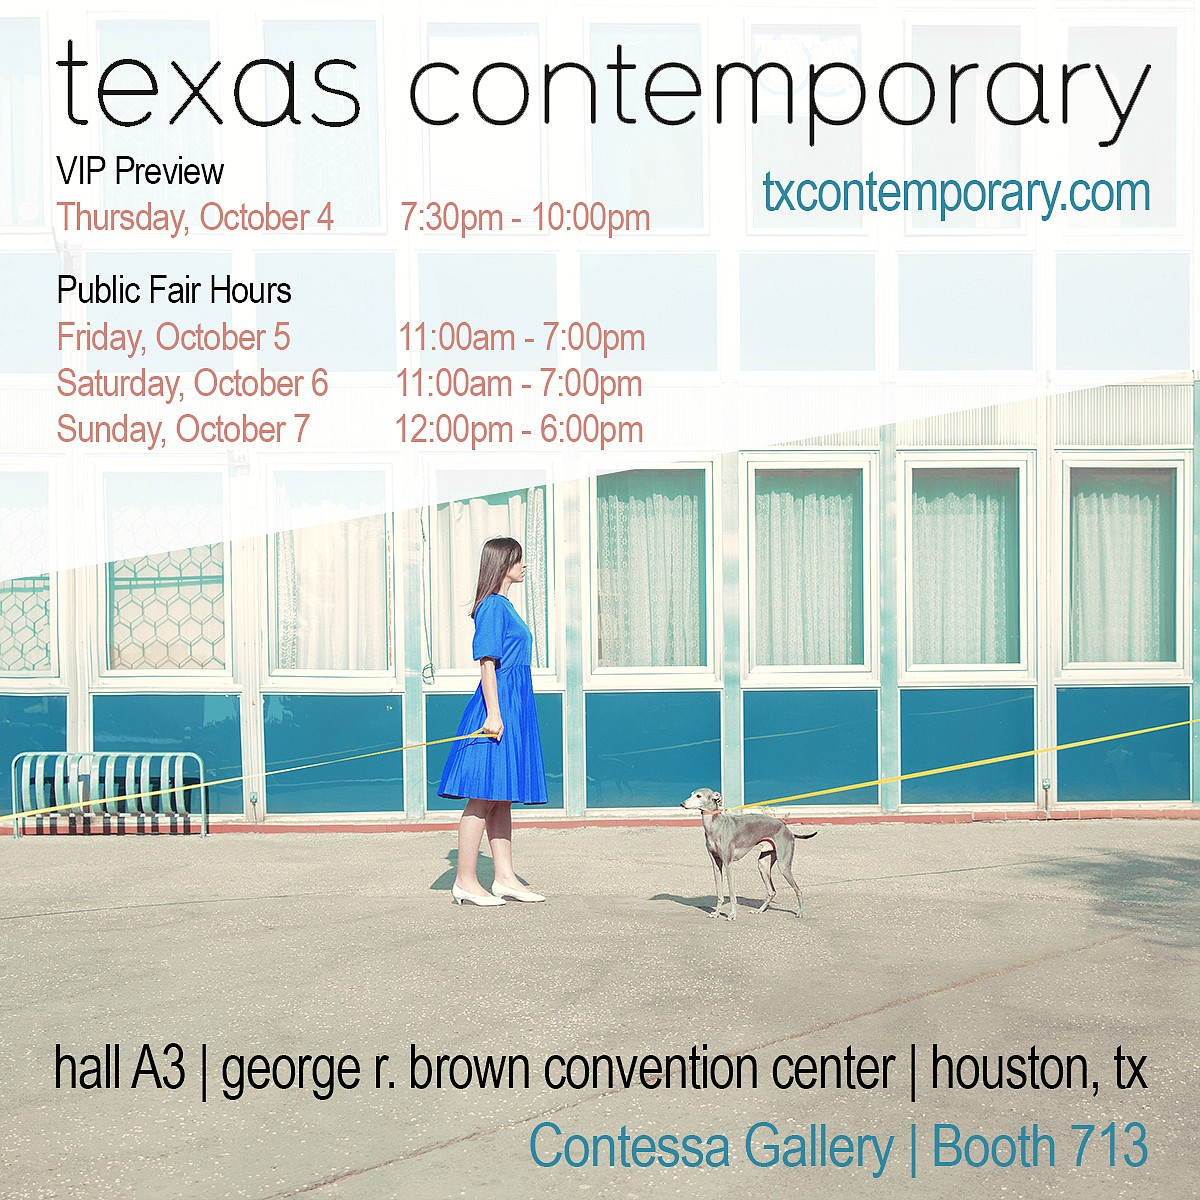 PRESS RELEASE: Texas Contemporary | 2018, Oct  4 - Oct  7, 2018